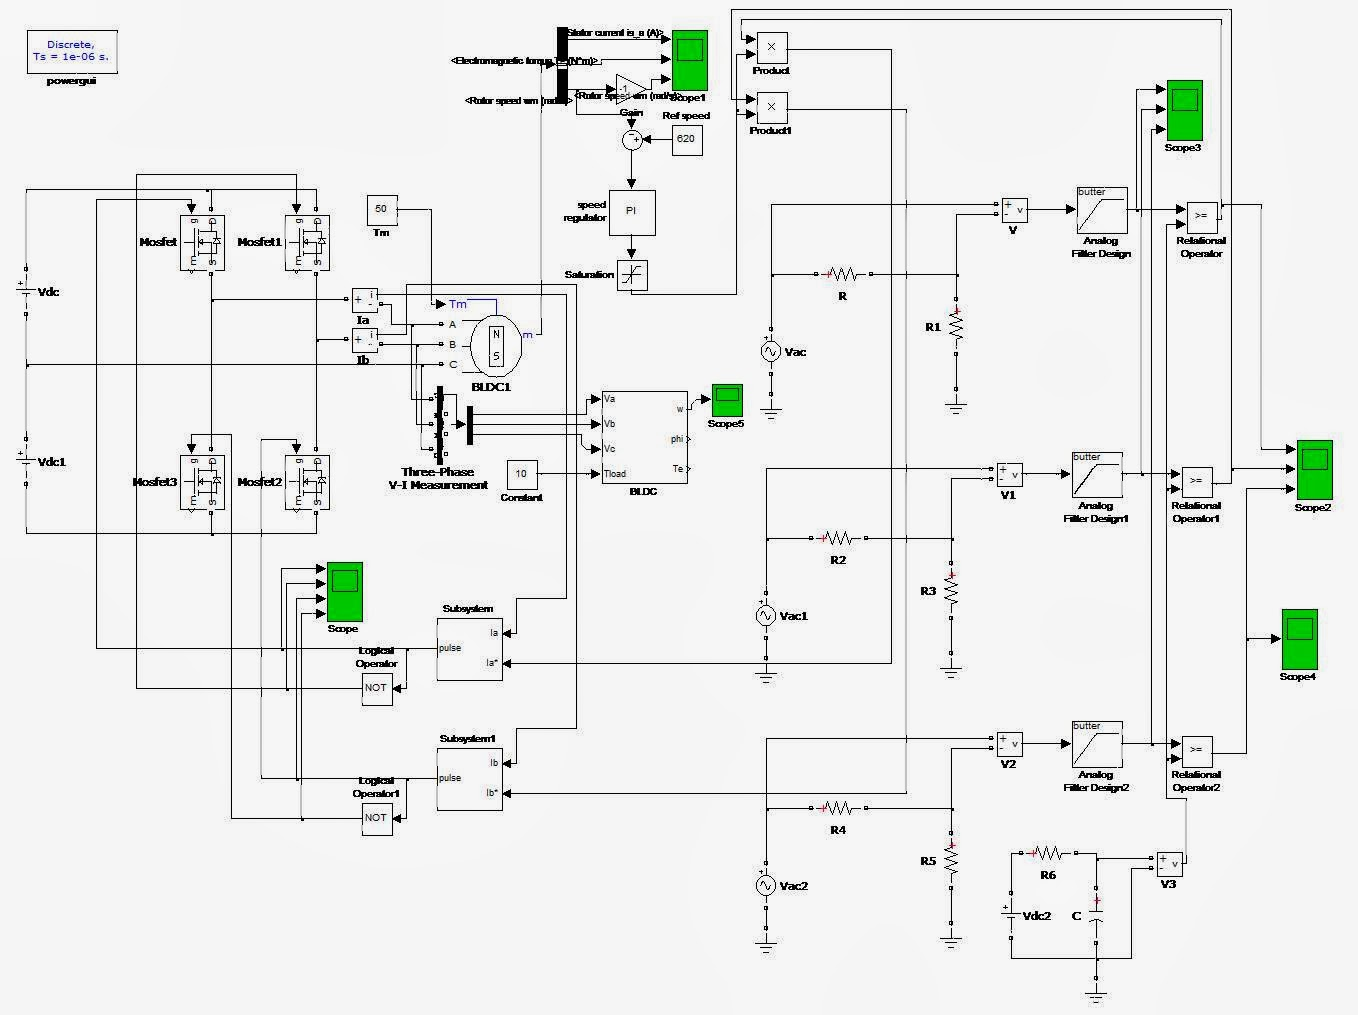 Matlab Electrical Ieee 917207560923 A Comparative Study Of Sensor Brushless Dc Motor Wiring Circuit Motorcontrol Controlcircuit And Less Control Four Switch Inverter Fed Pmbldc Is Discussed Simulation Model Using Transfer Function Bldc Presented